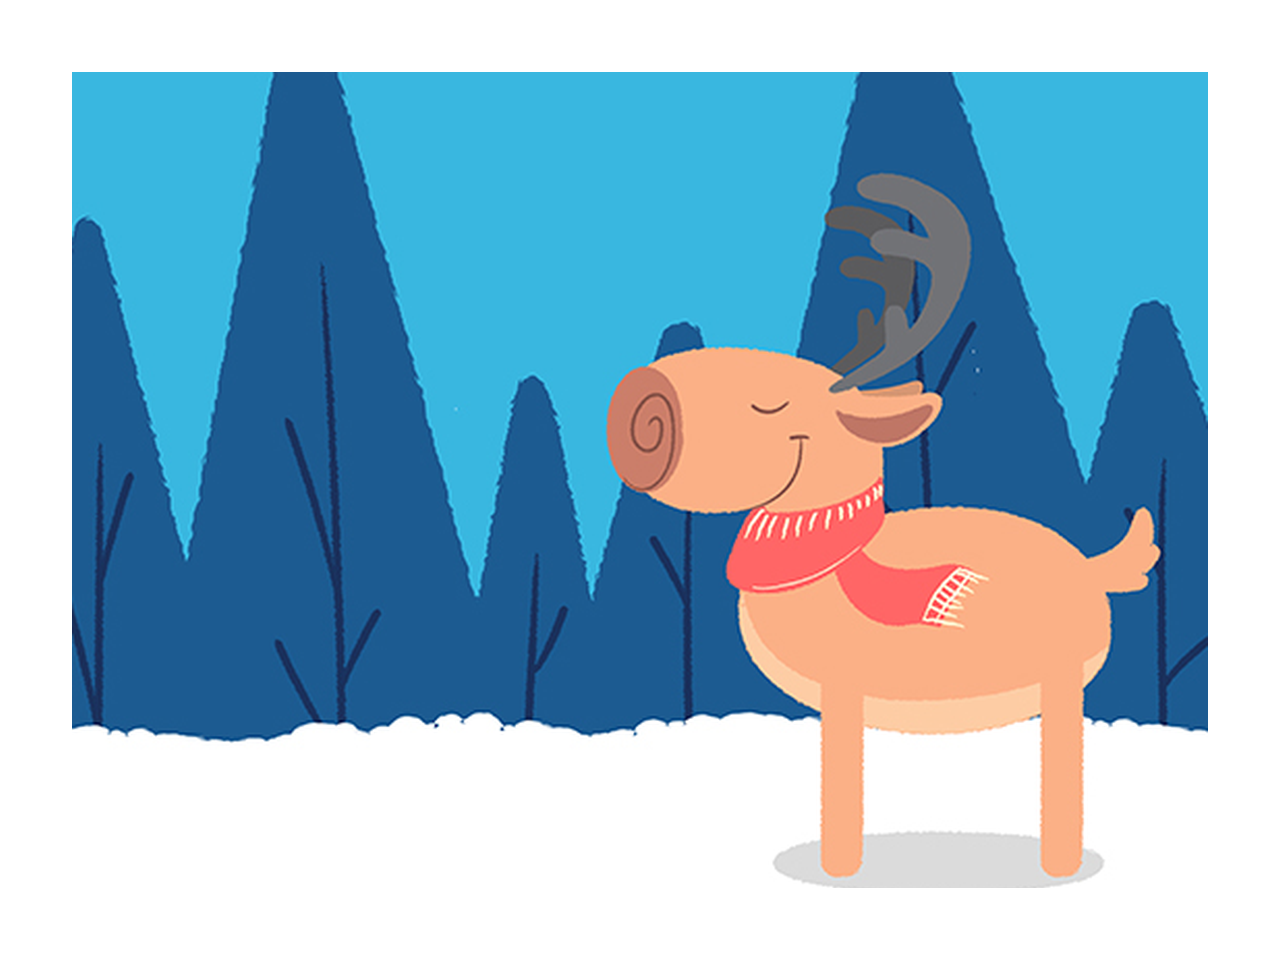 How to import png into after effects. Animate a jumping reindeer